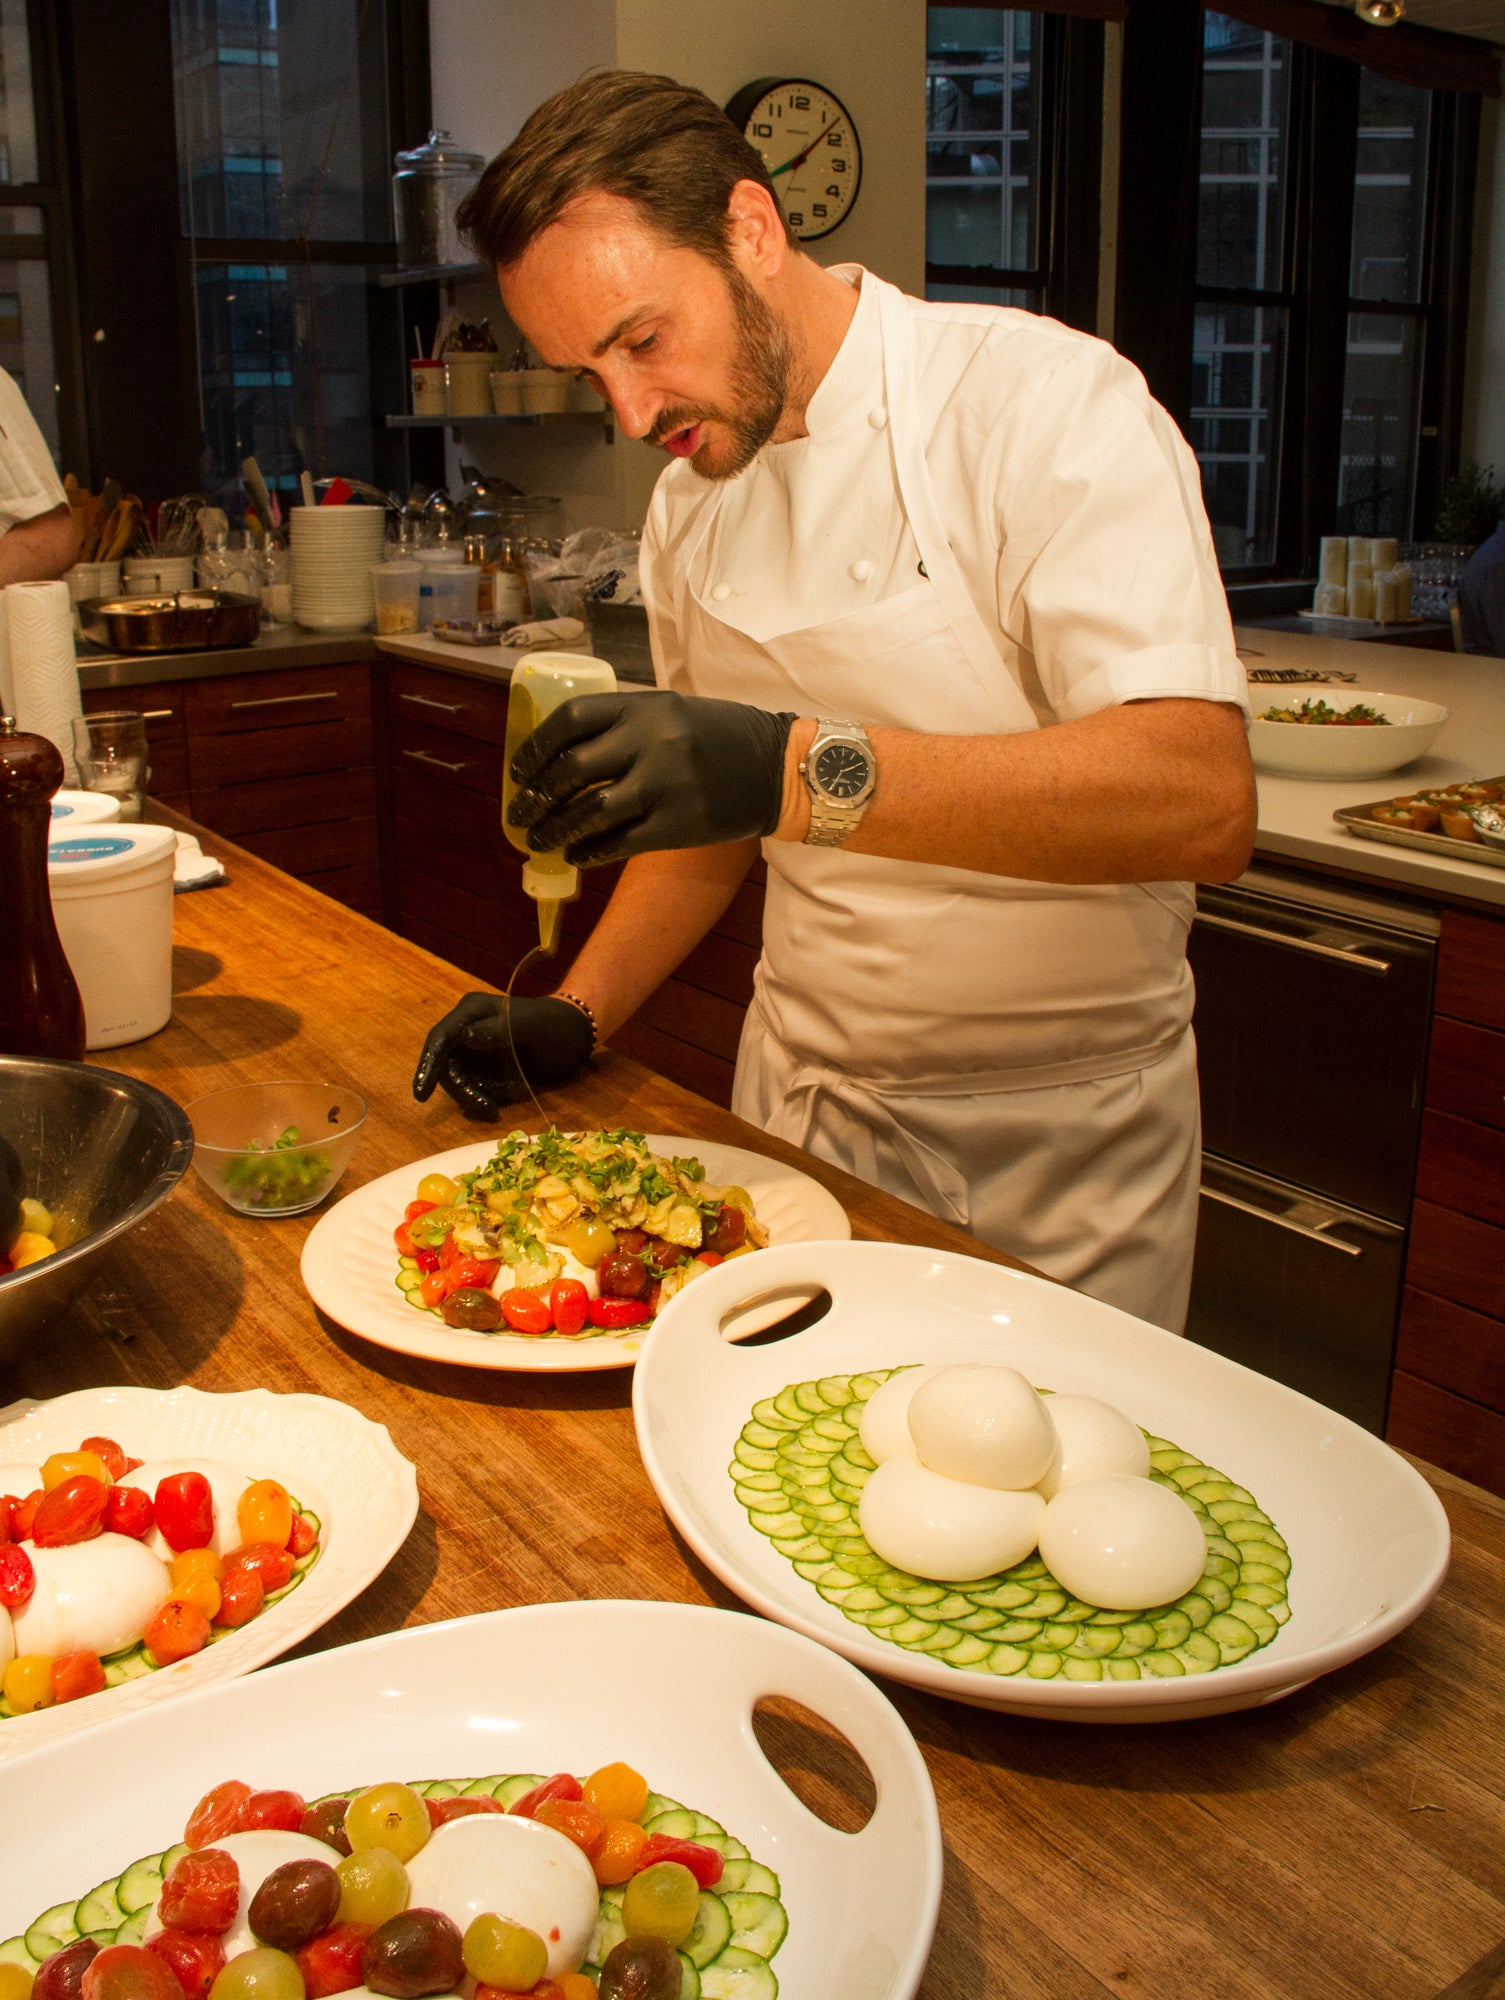 Scenes From Our SAVEUR Supper with Jason Atherton